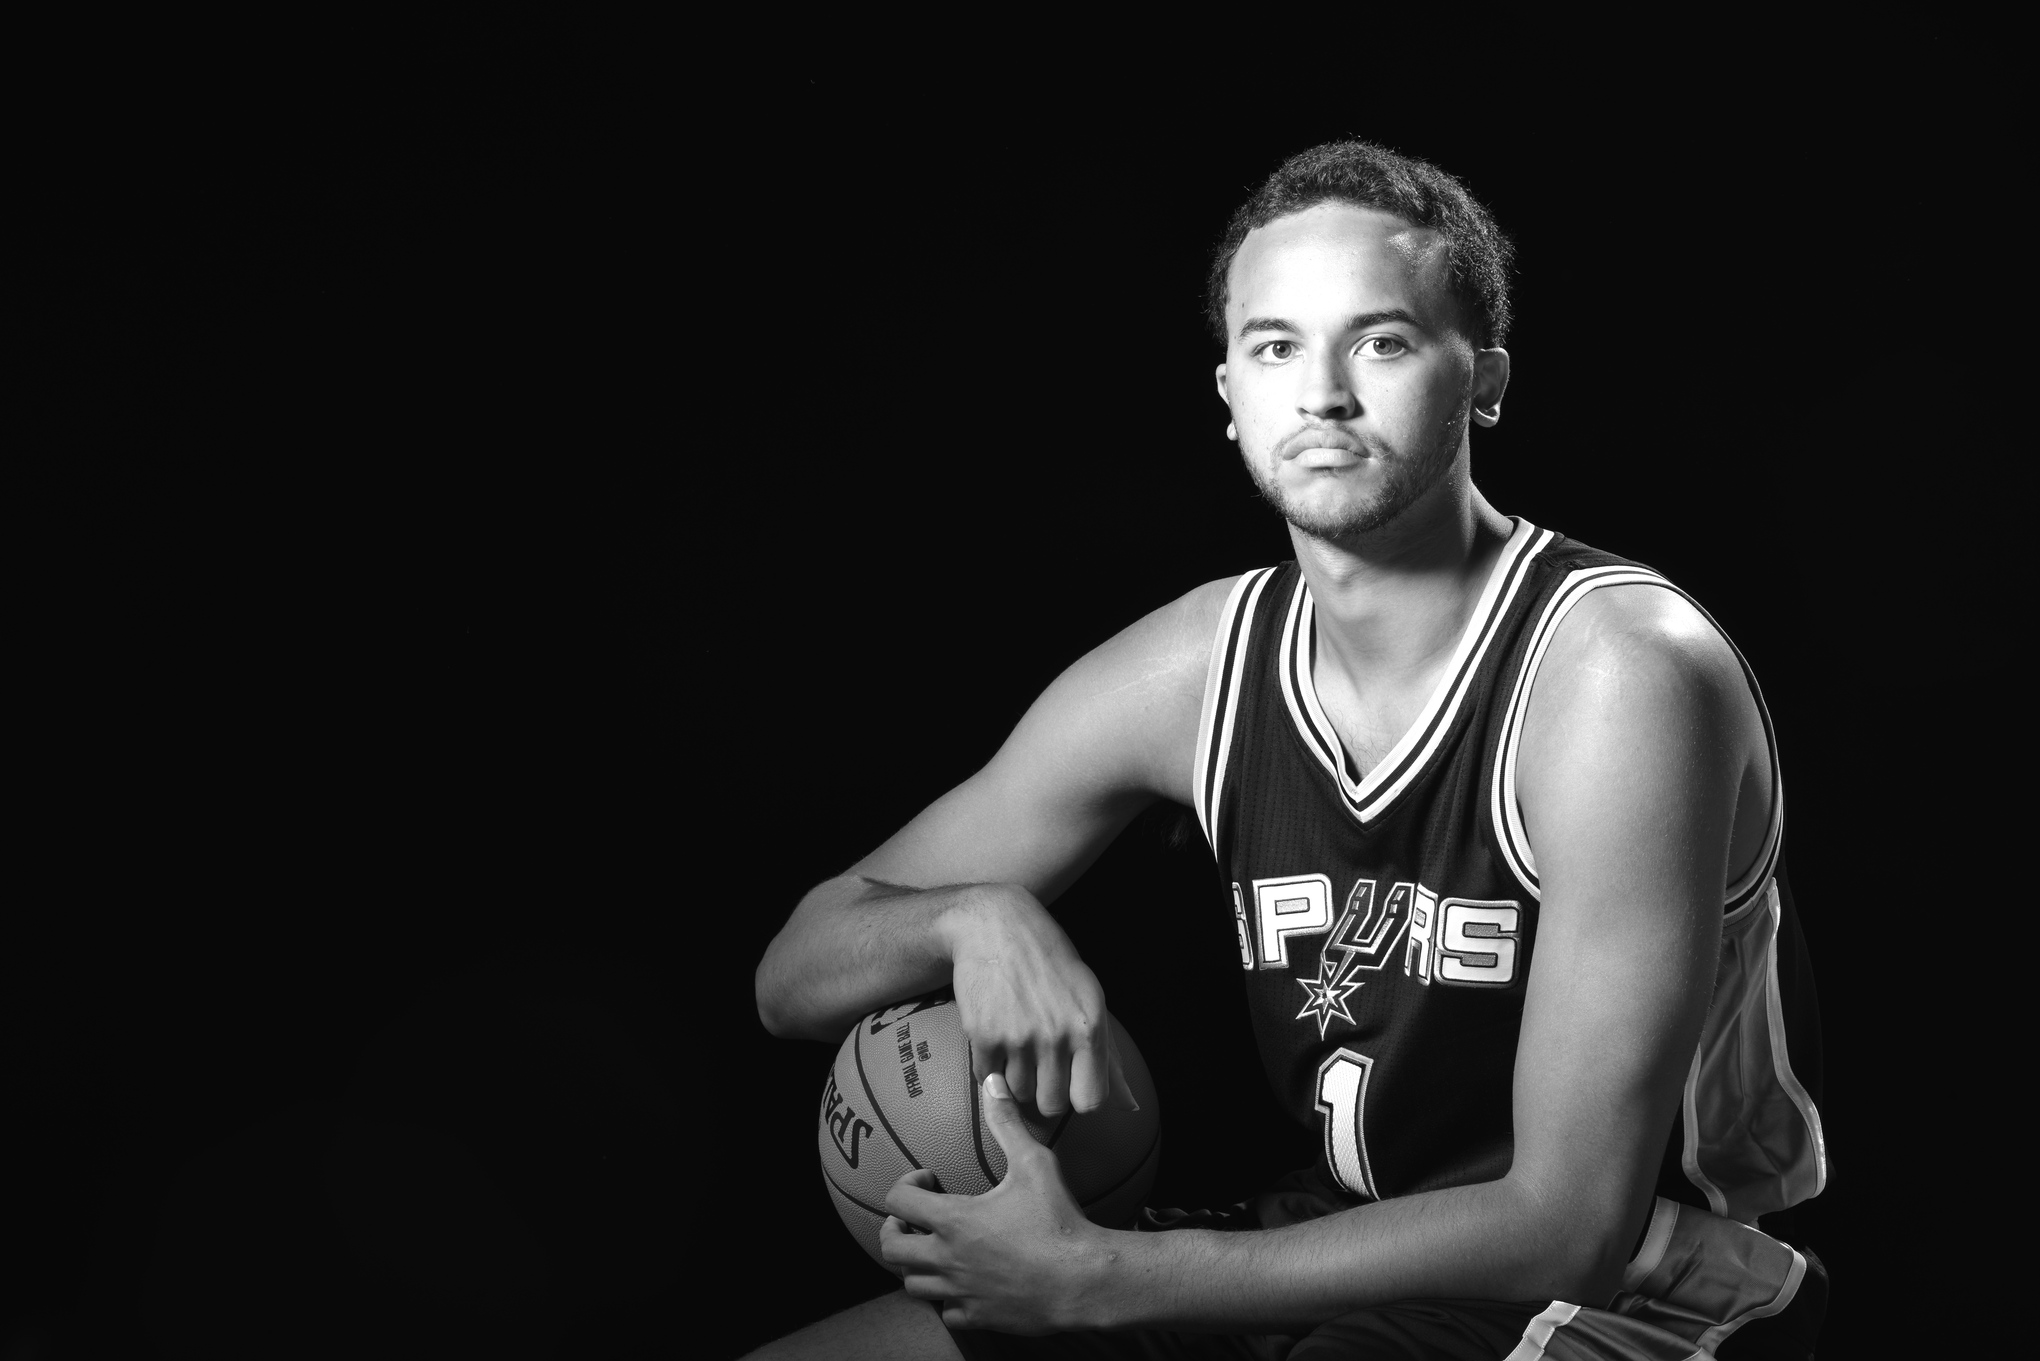 Kyle-anderson-nba-rookie-day-9